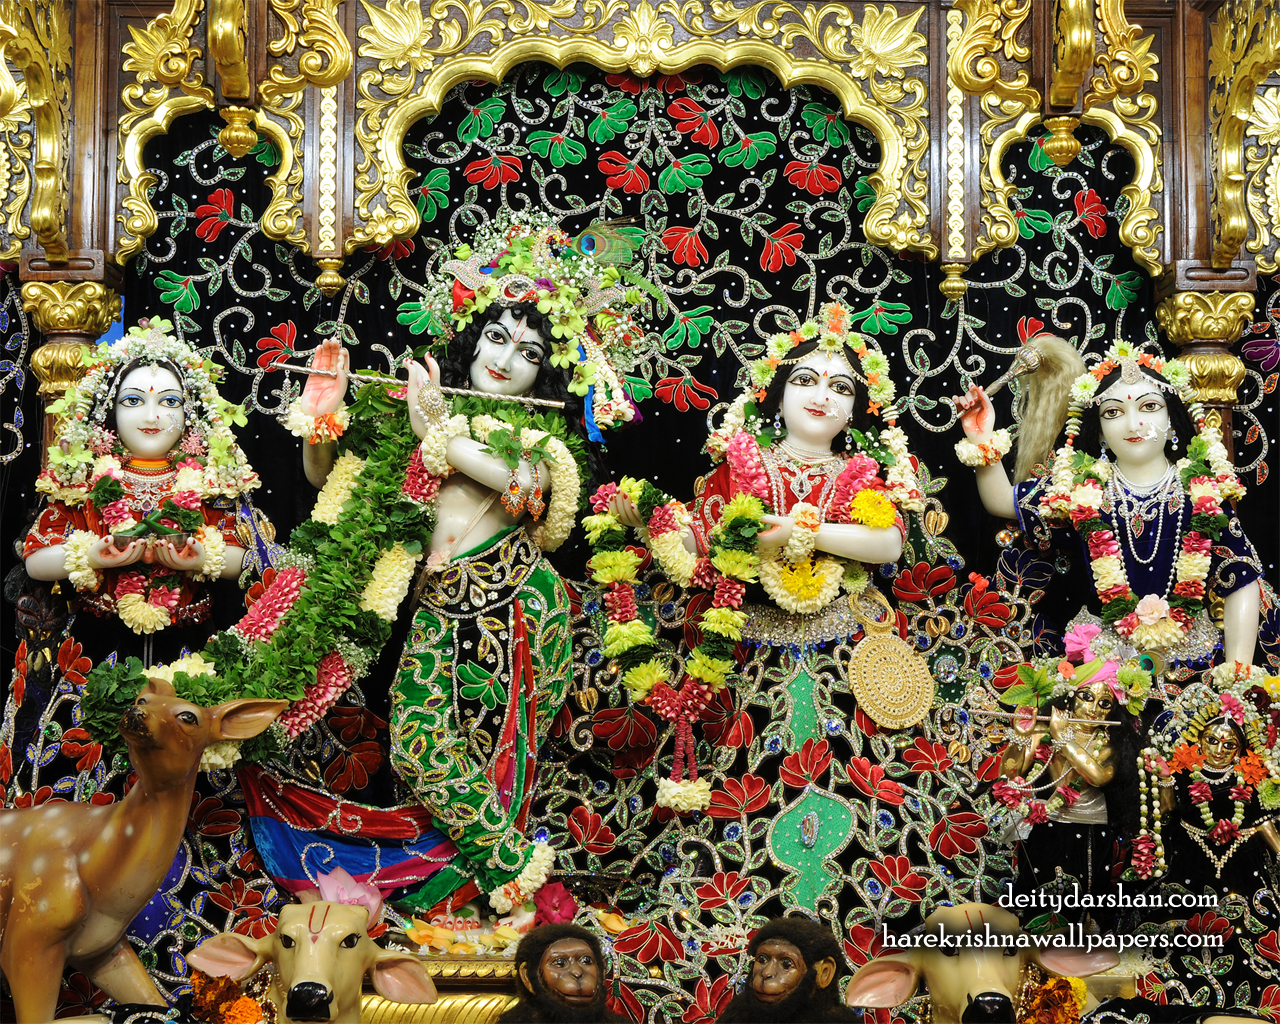 Sri Sri Radha Gopinath Lalita Vishakha Wallpaper (075) Size 1280x1024 Download